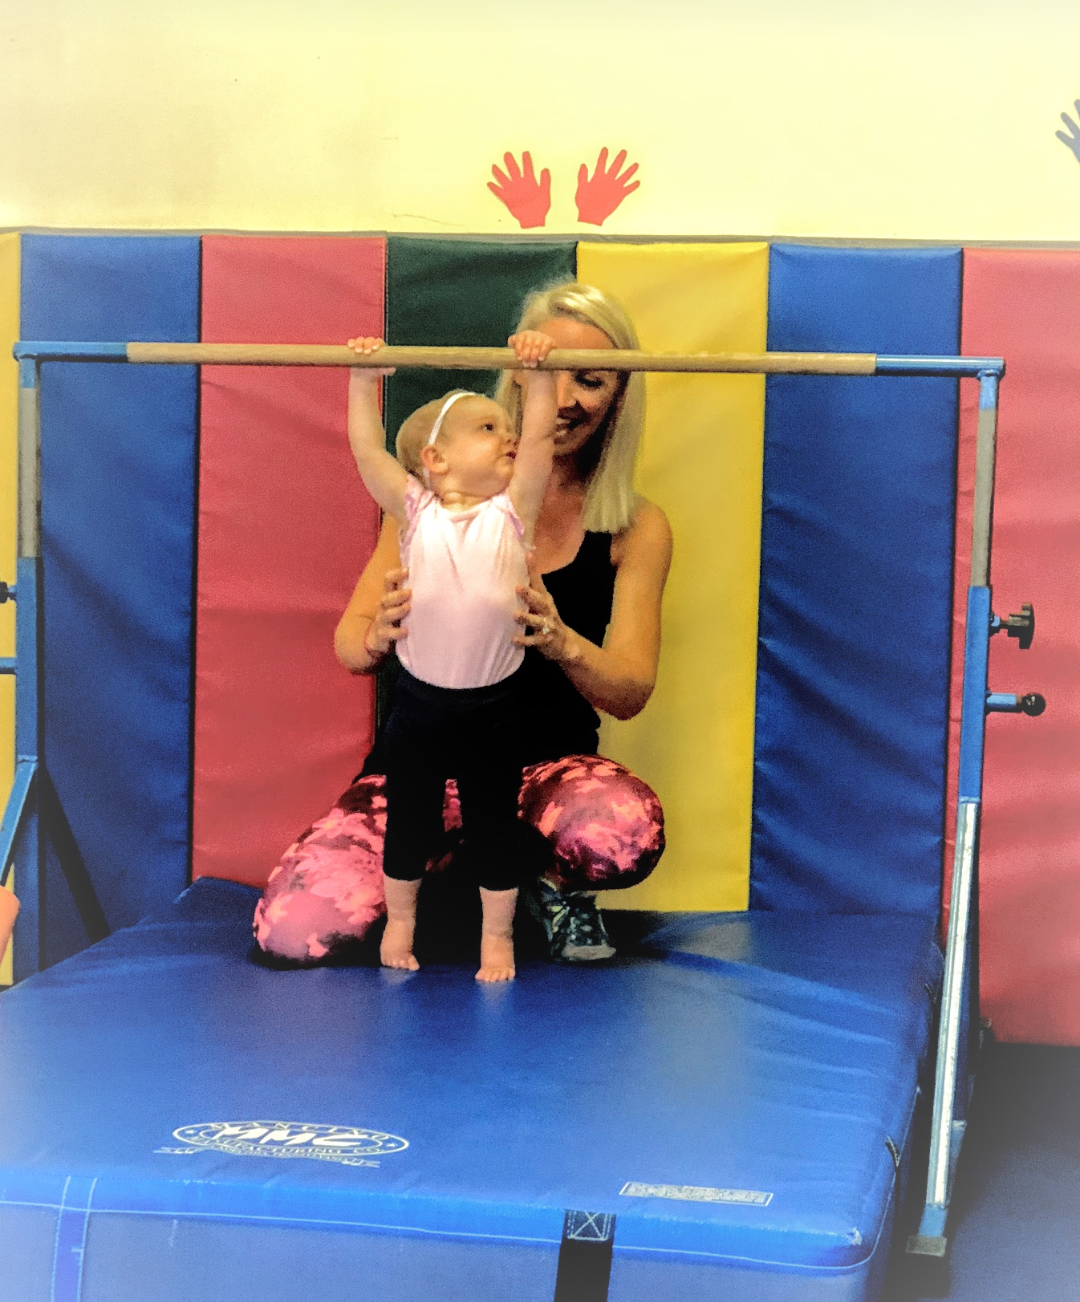 Toddler on miniature gymnastics bars with mom